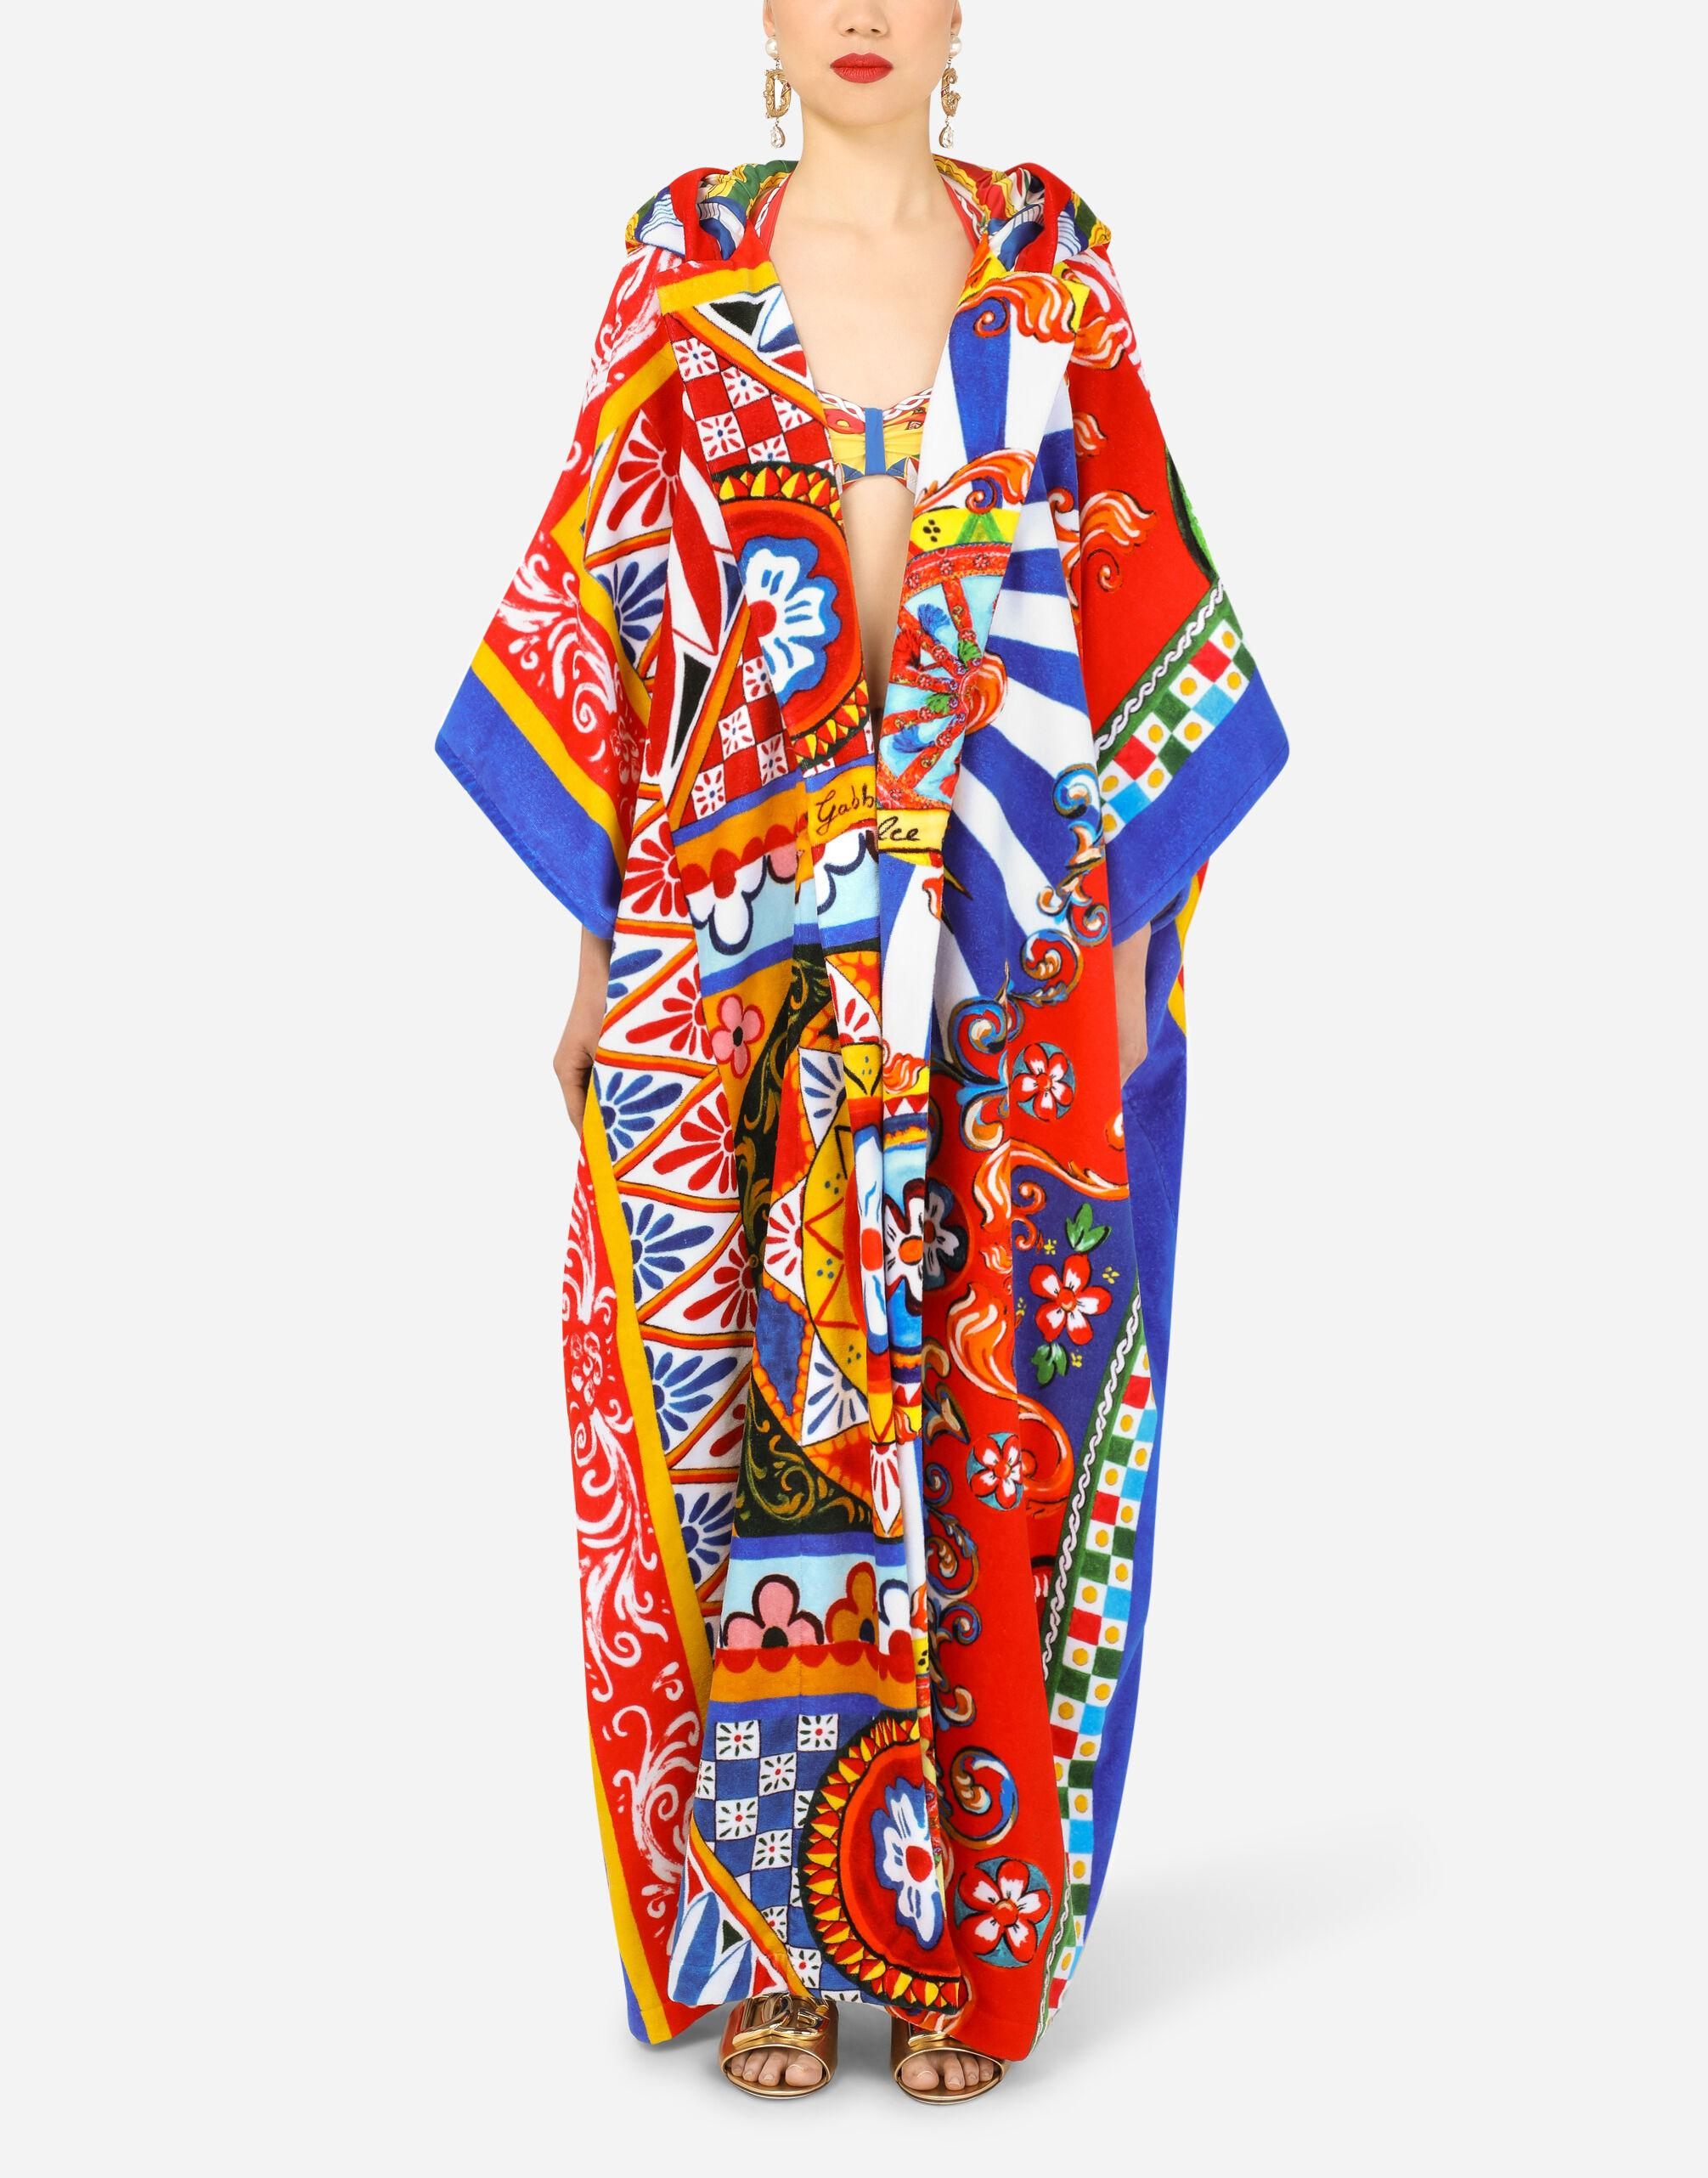 Patchwork robe with mixed carretto prints